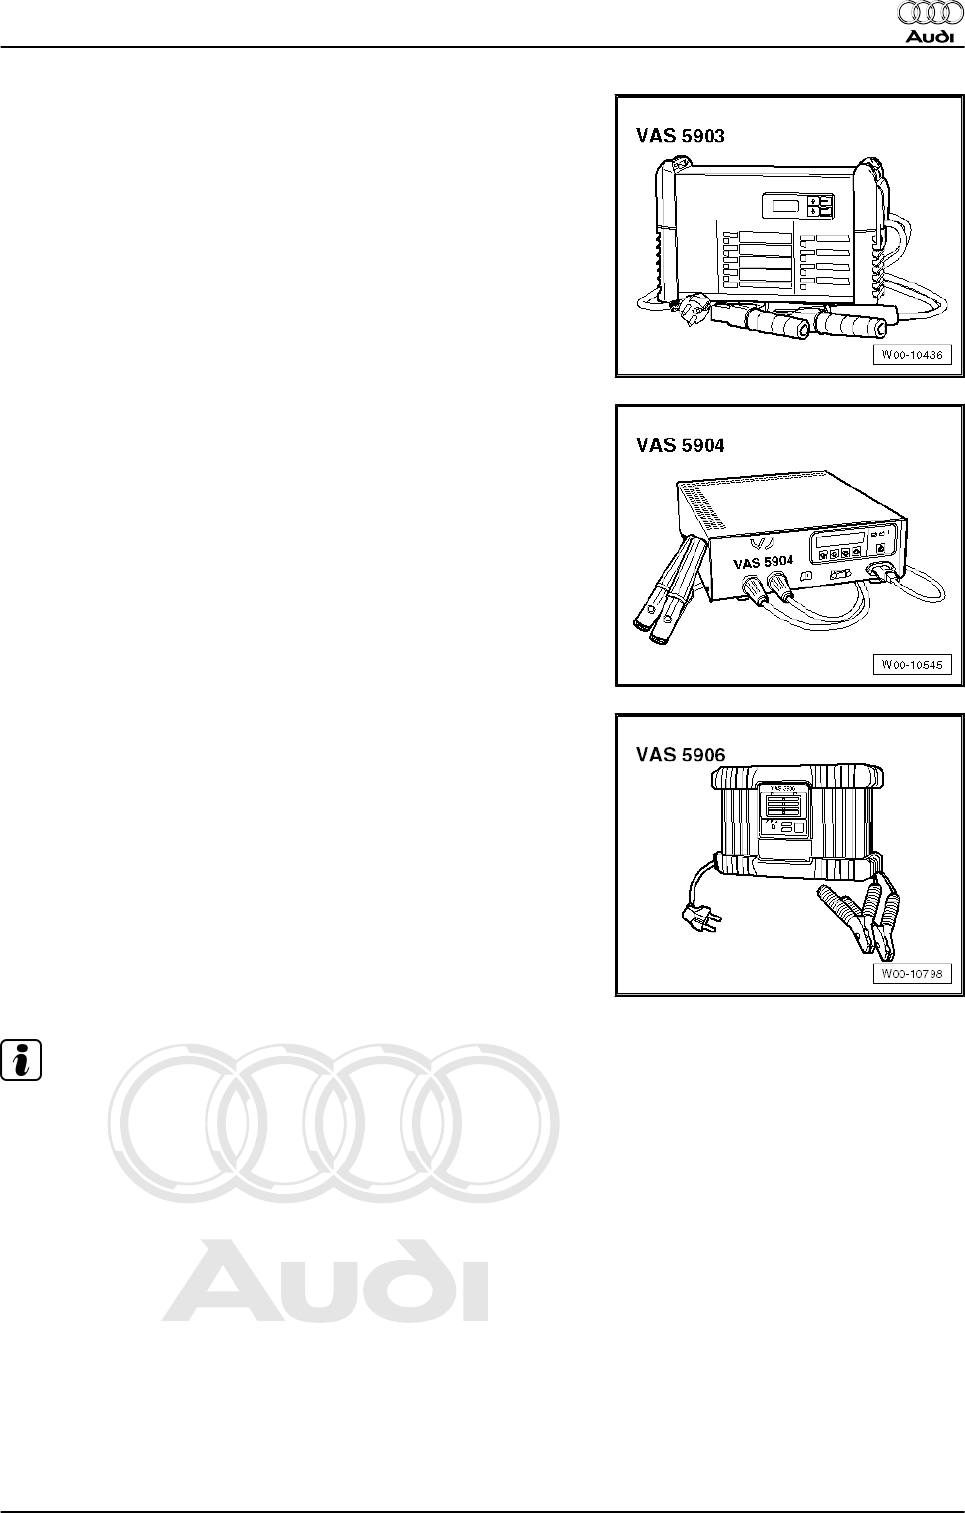 Audi A2 2001 Workshop Manual PDF